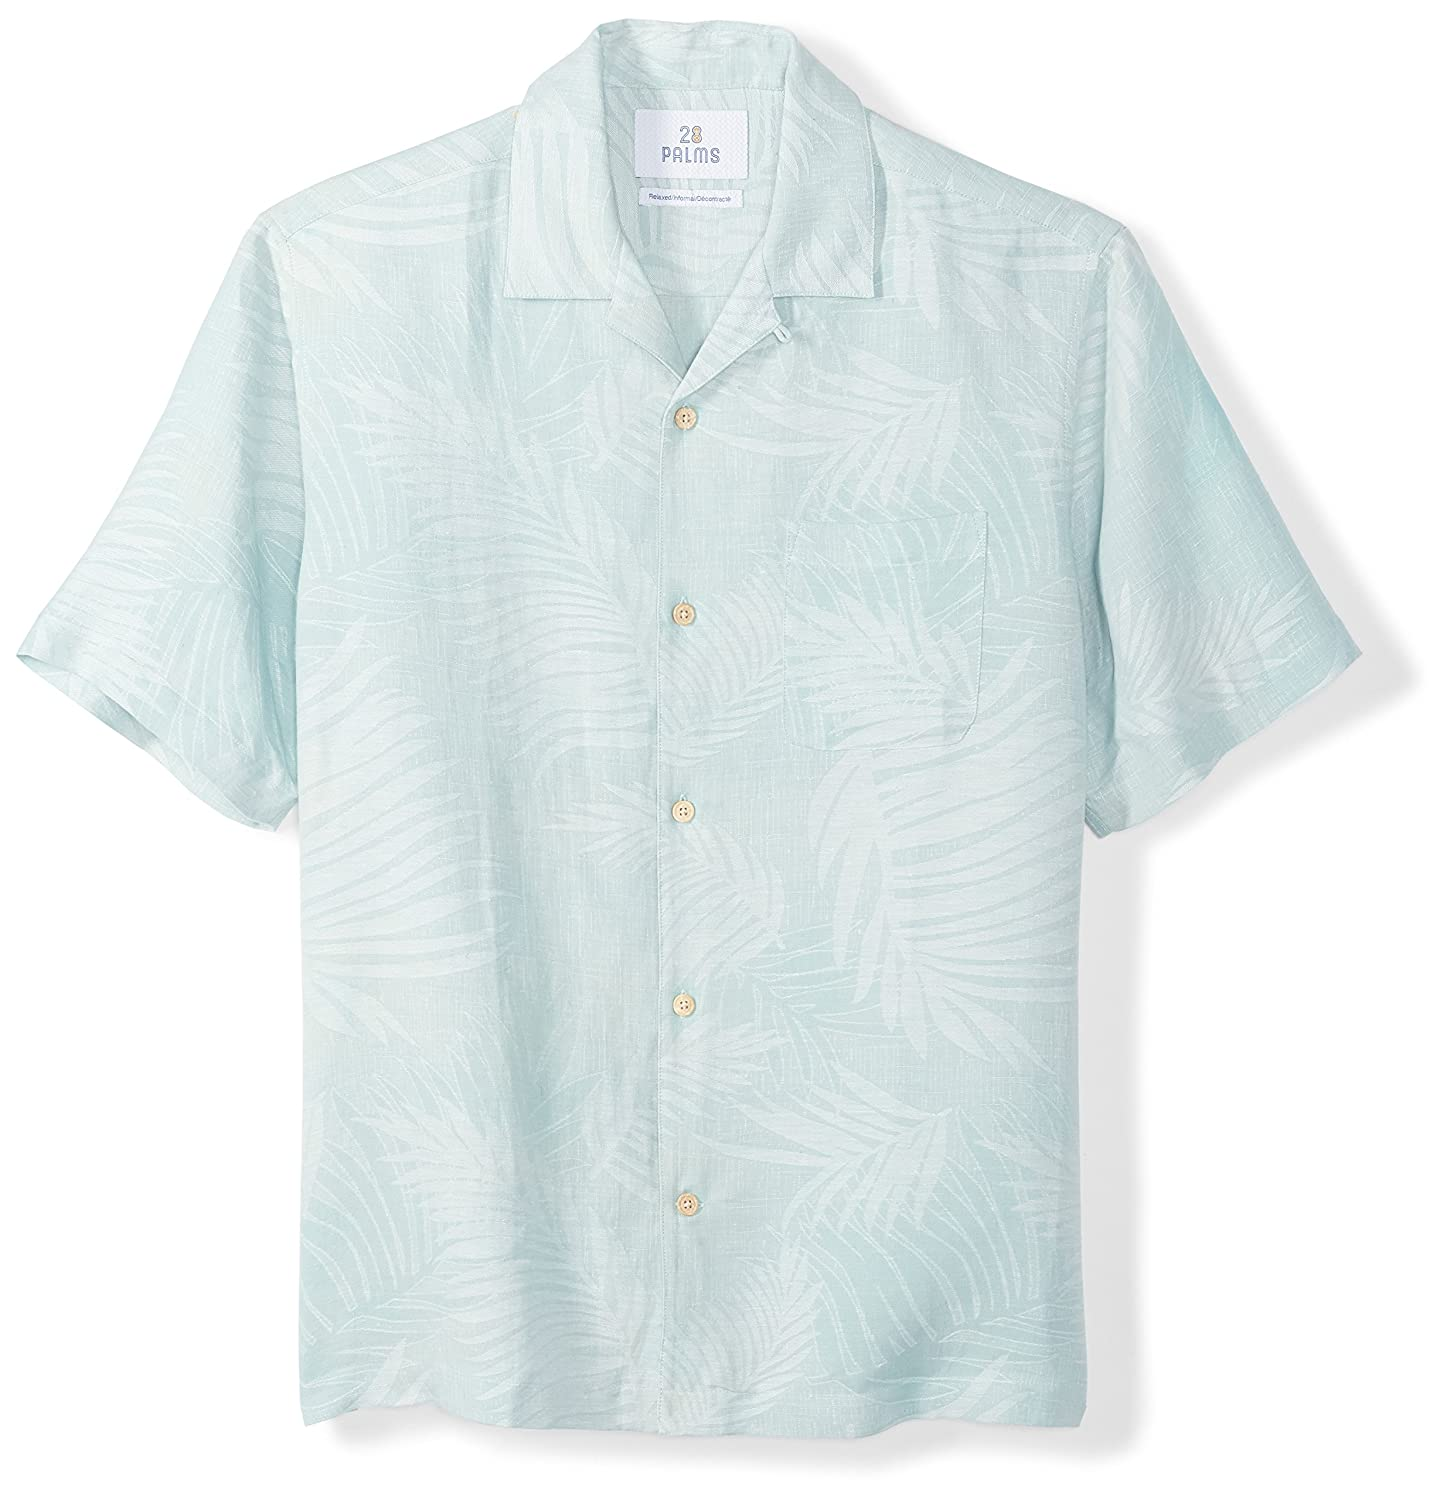 28 Palms Mens Standard Relaxed-fit Silk/Linen Tropical Leaves Jacquard Shirt MPM25005